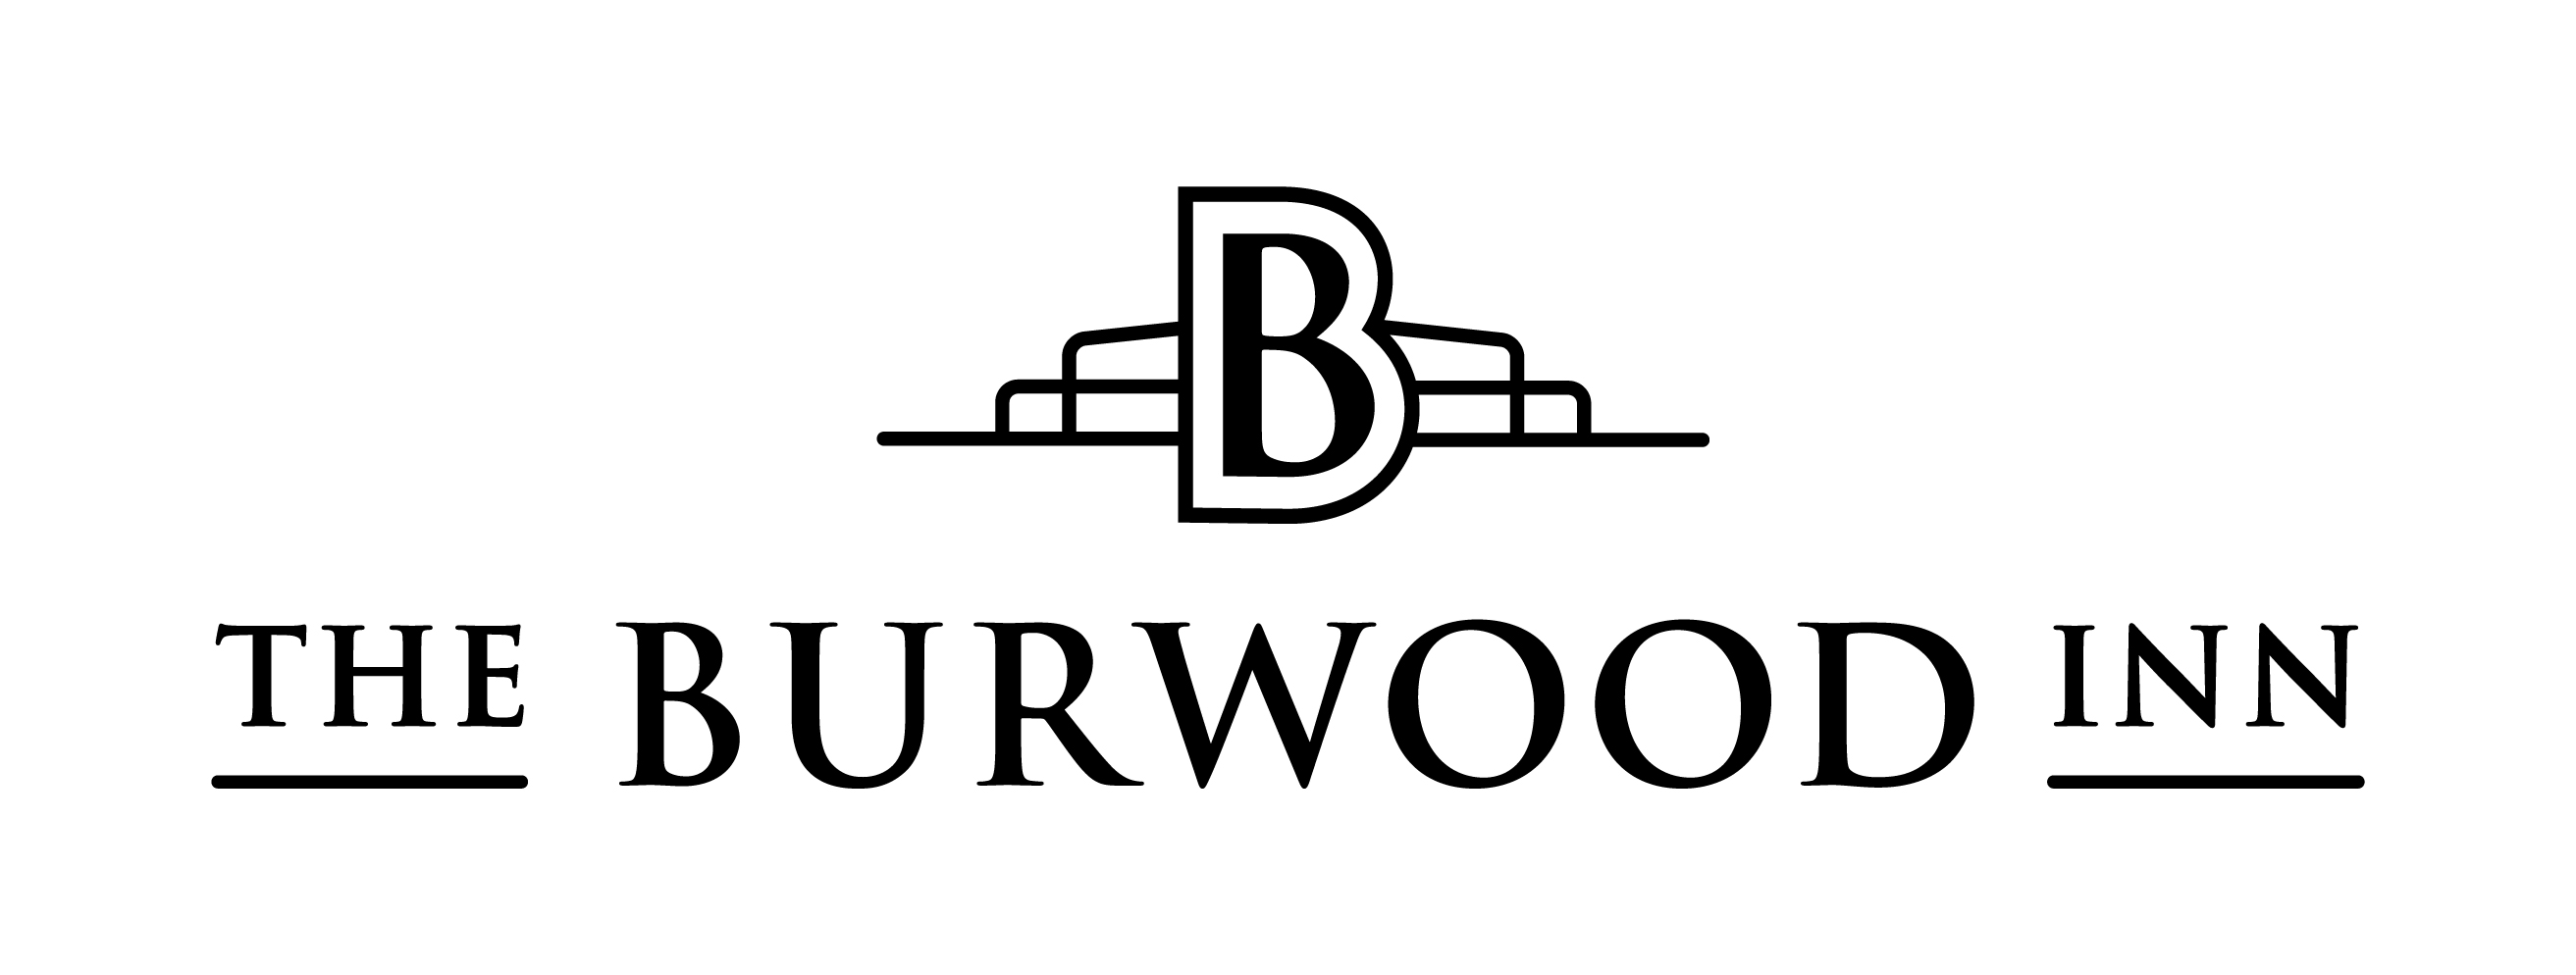 Burwood Inn Hotel